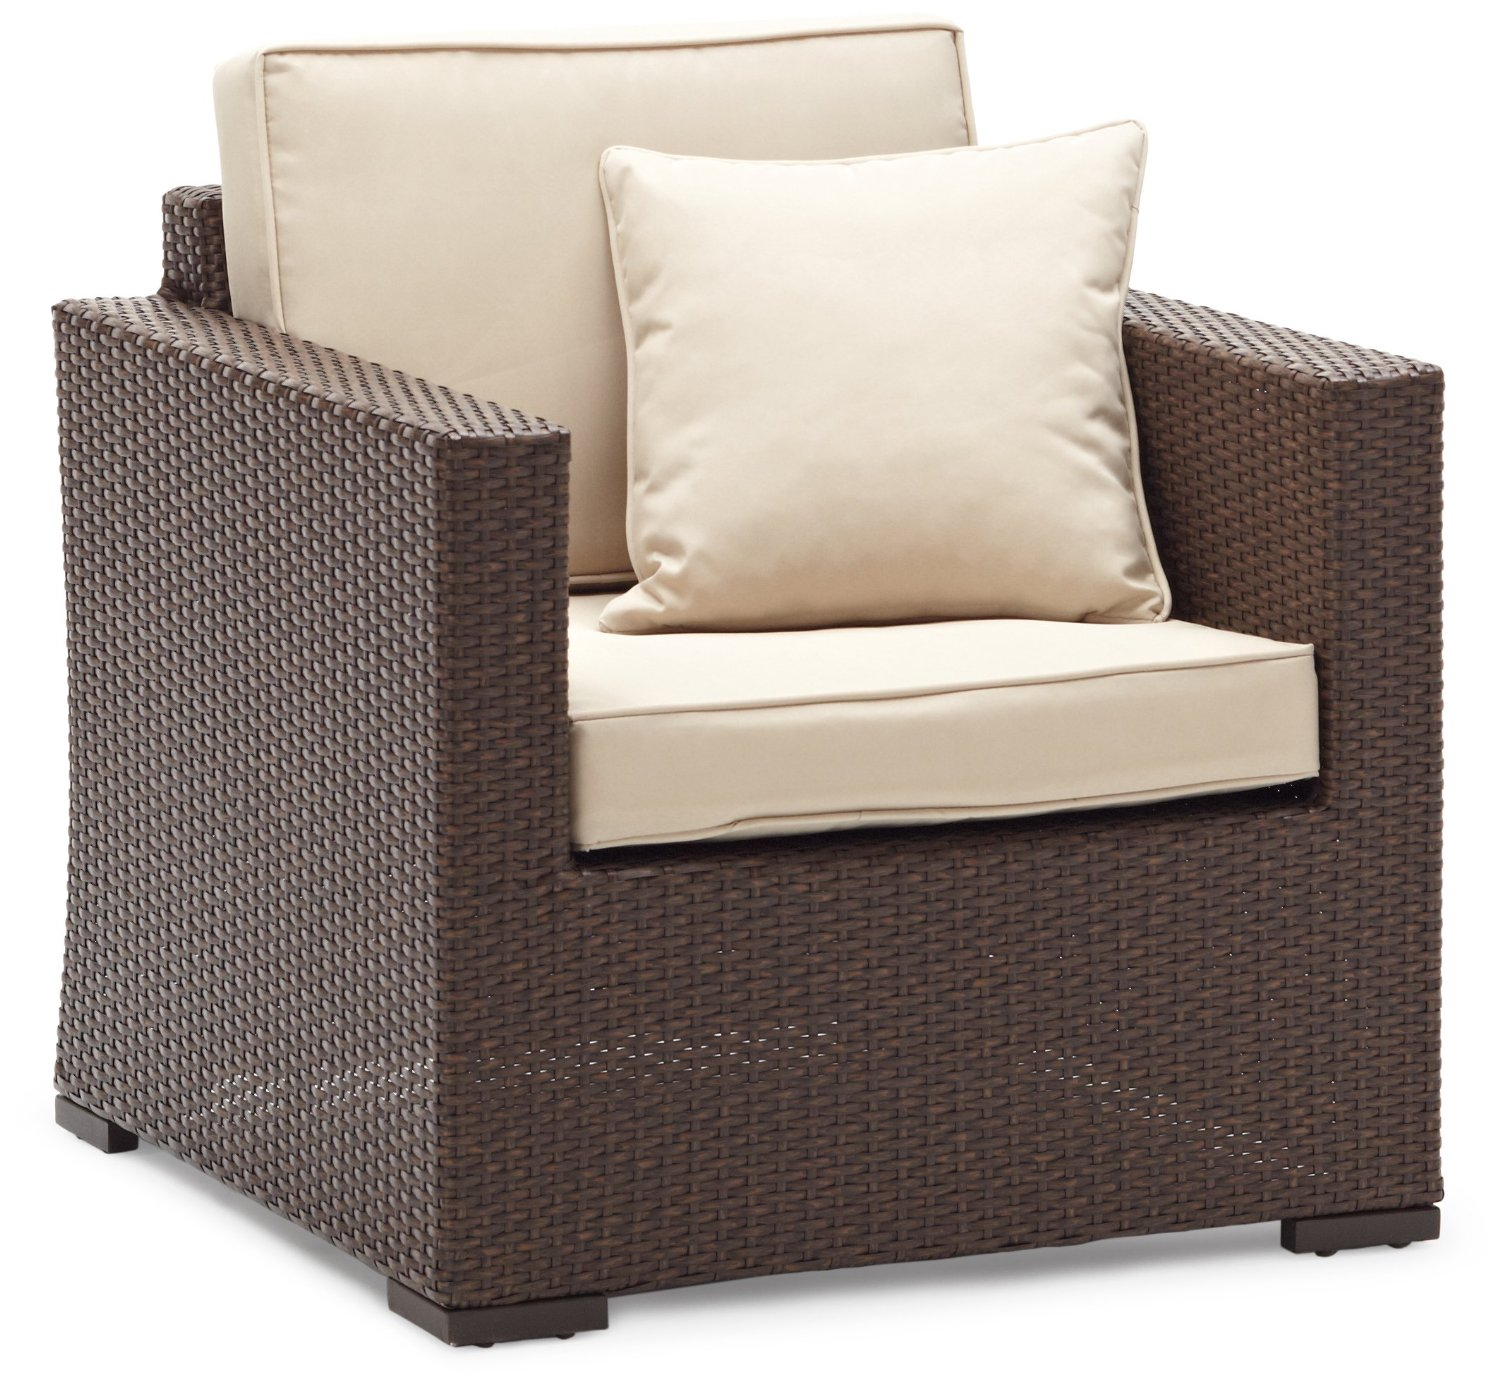 Strathwood Griffen Furniture All Weather Wicker Chair Dark Brown Strathwood Outdoor Patio